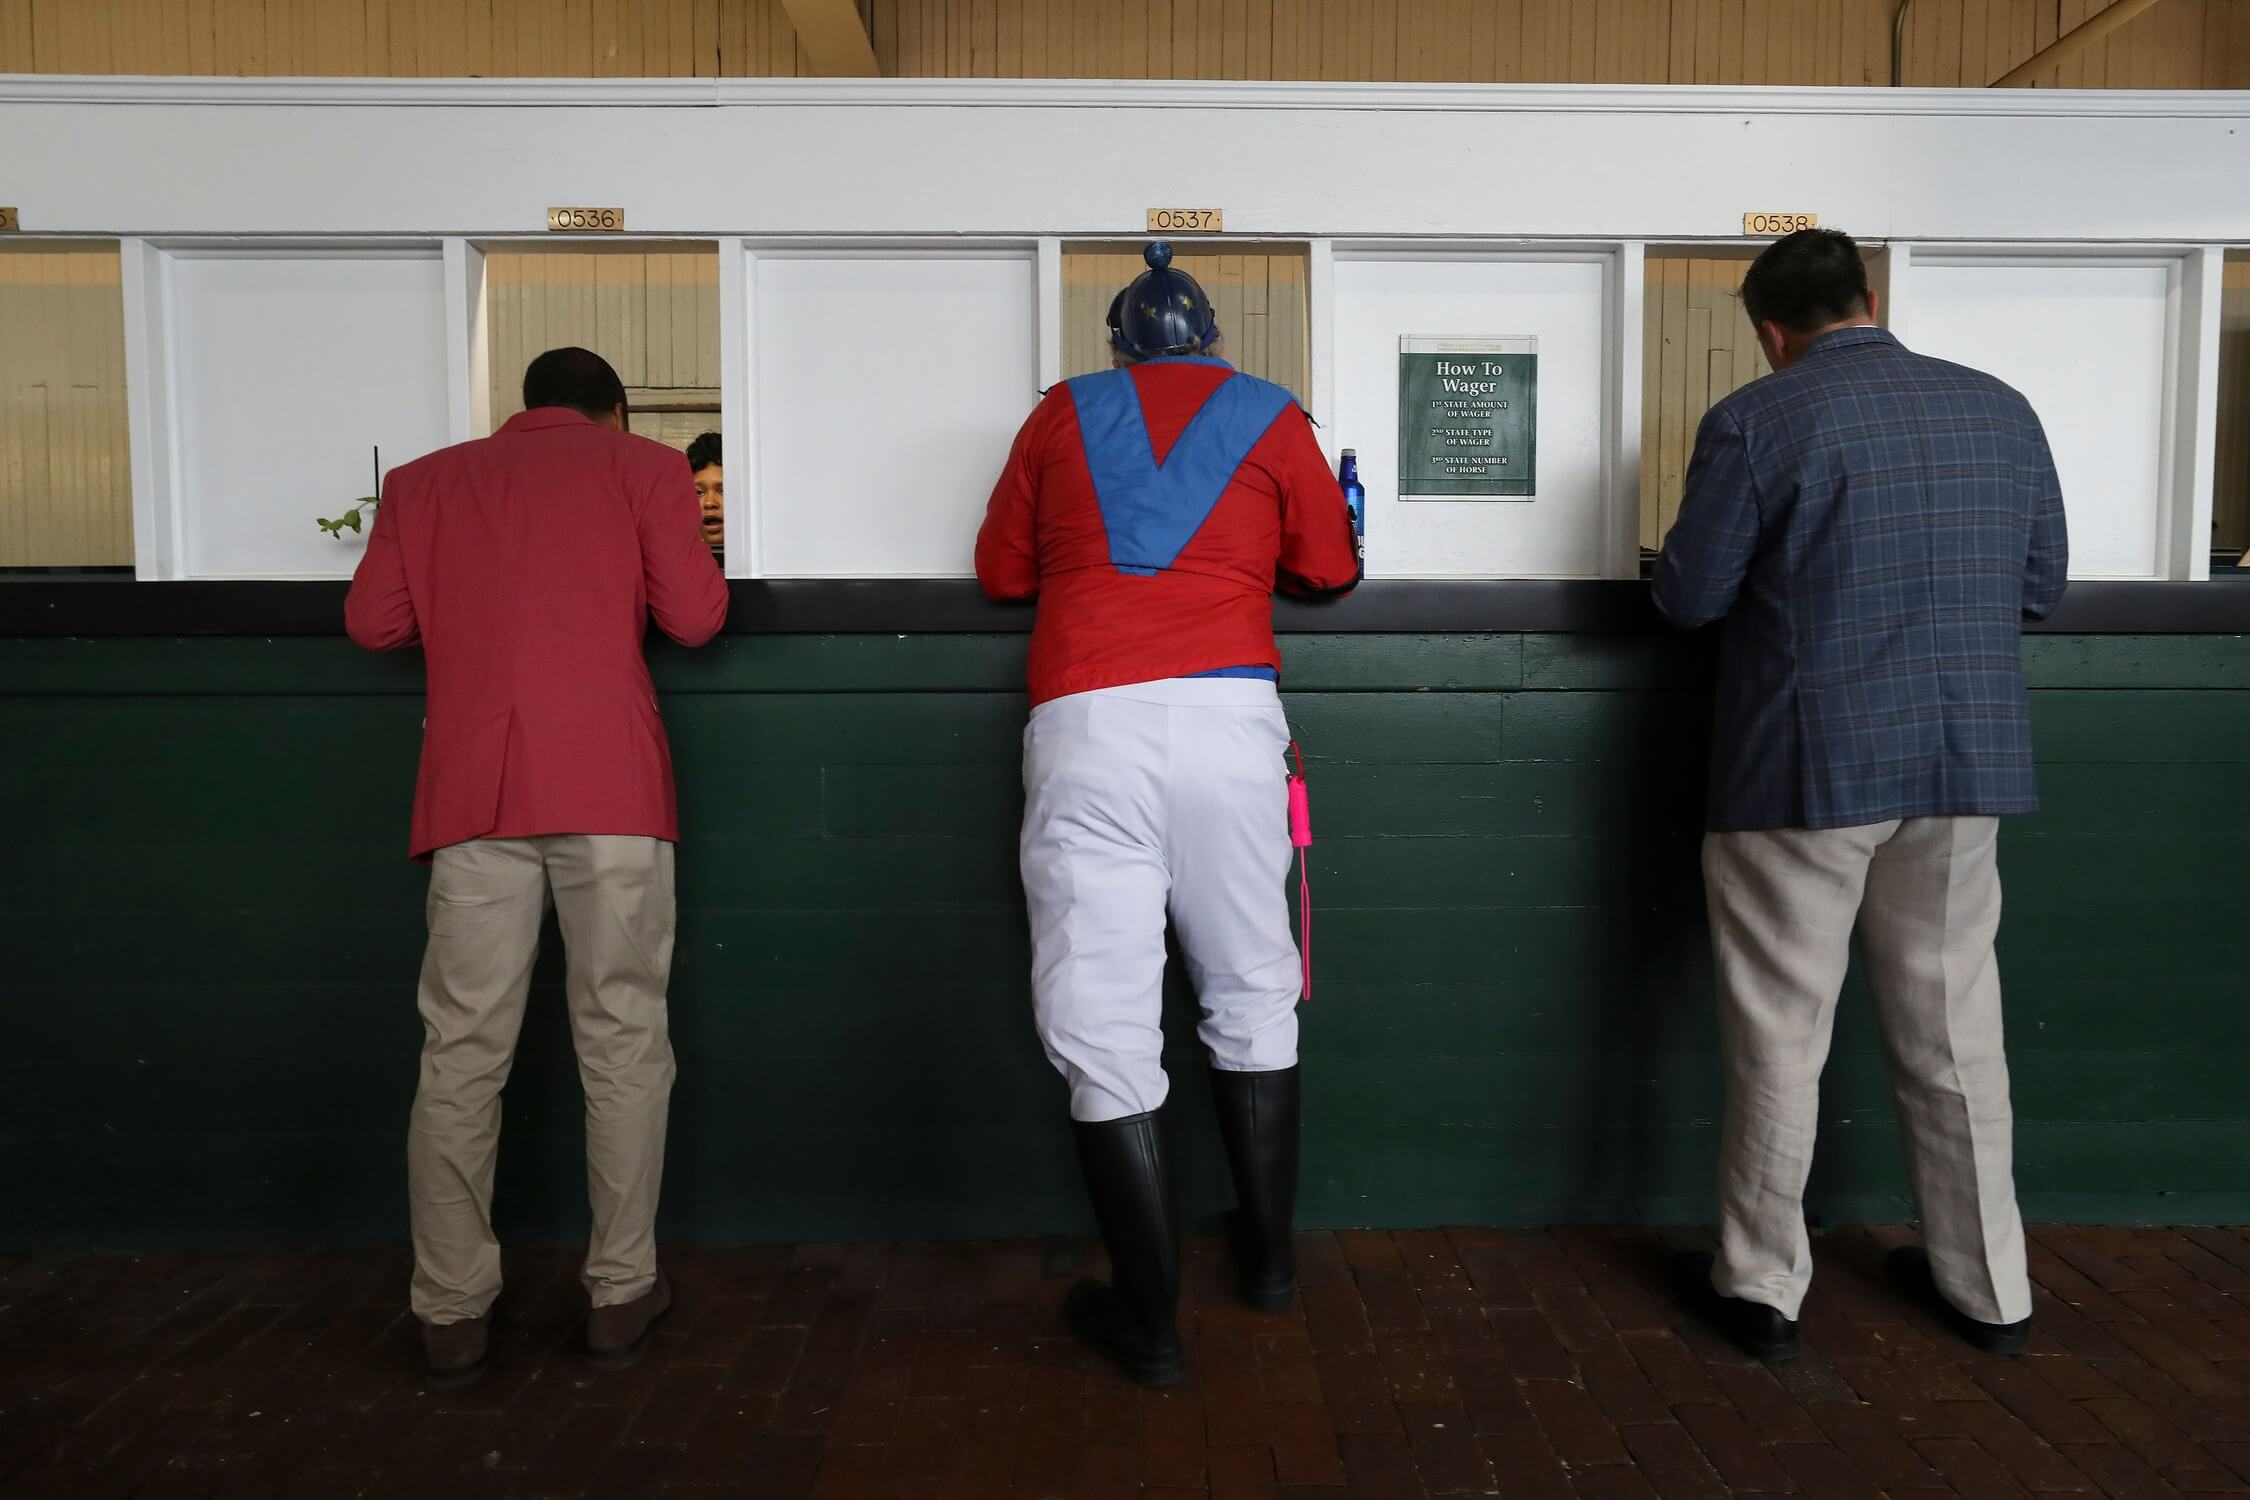 Michael Freeze, center, is not a real jockey, but that didn't stop him from dressing the part and placing a bet ahead of the Kentucky Derby at Churchill Downs on May 4, 2019